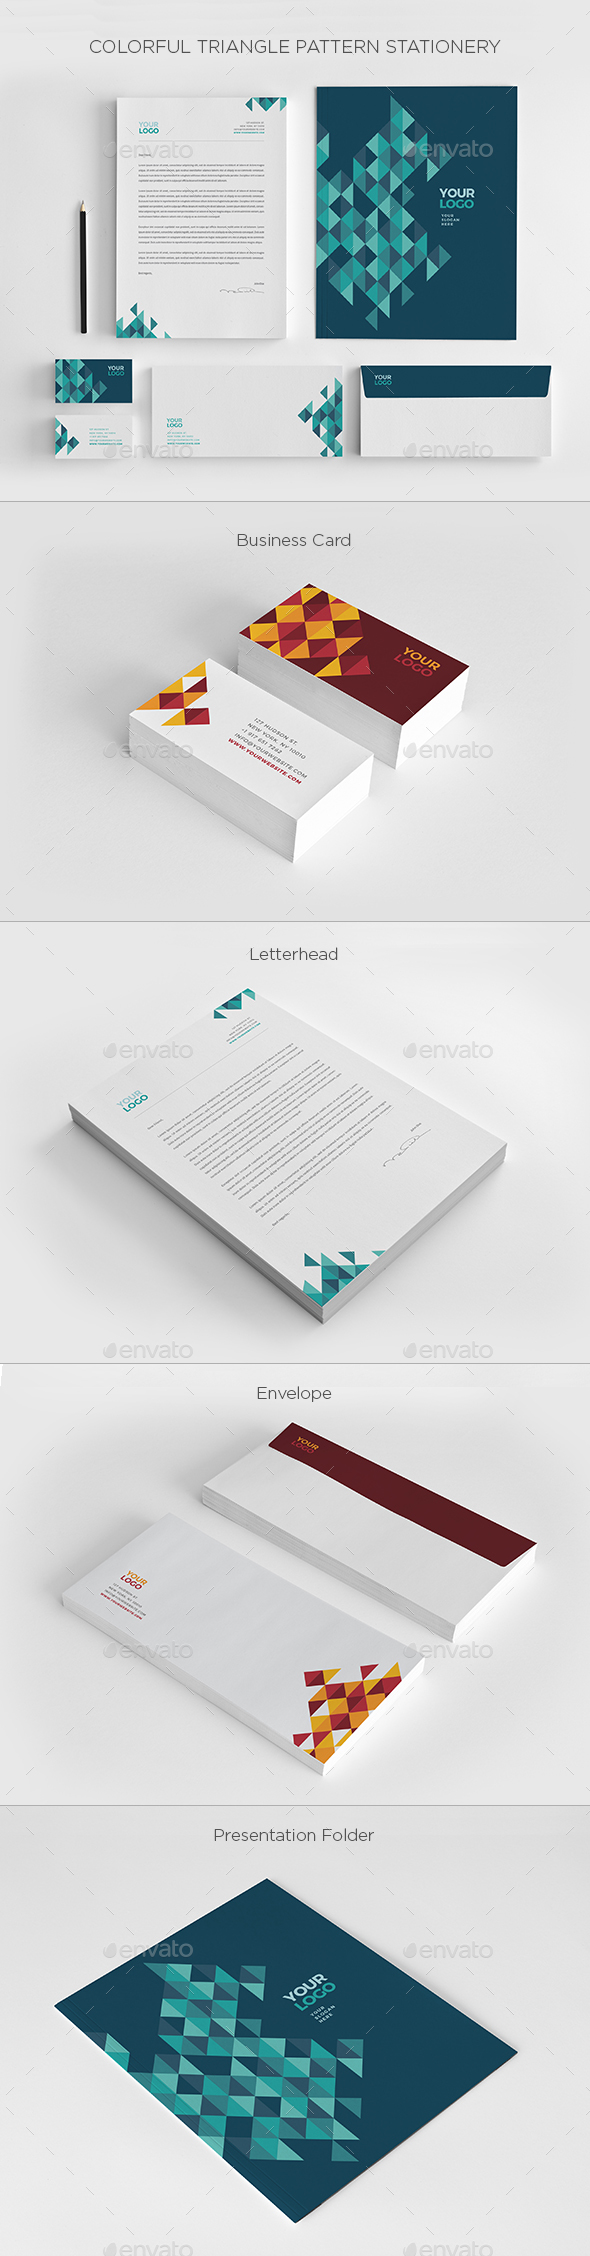 Colorful Triangles Pattern Stationery - Stationery Print Templates